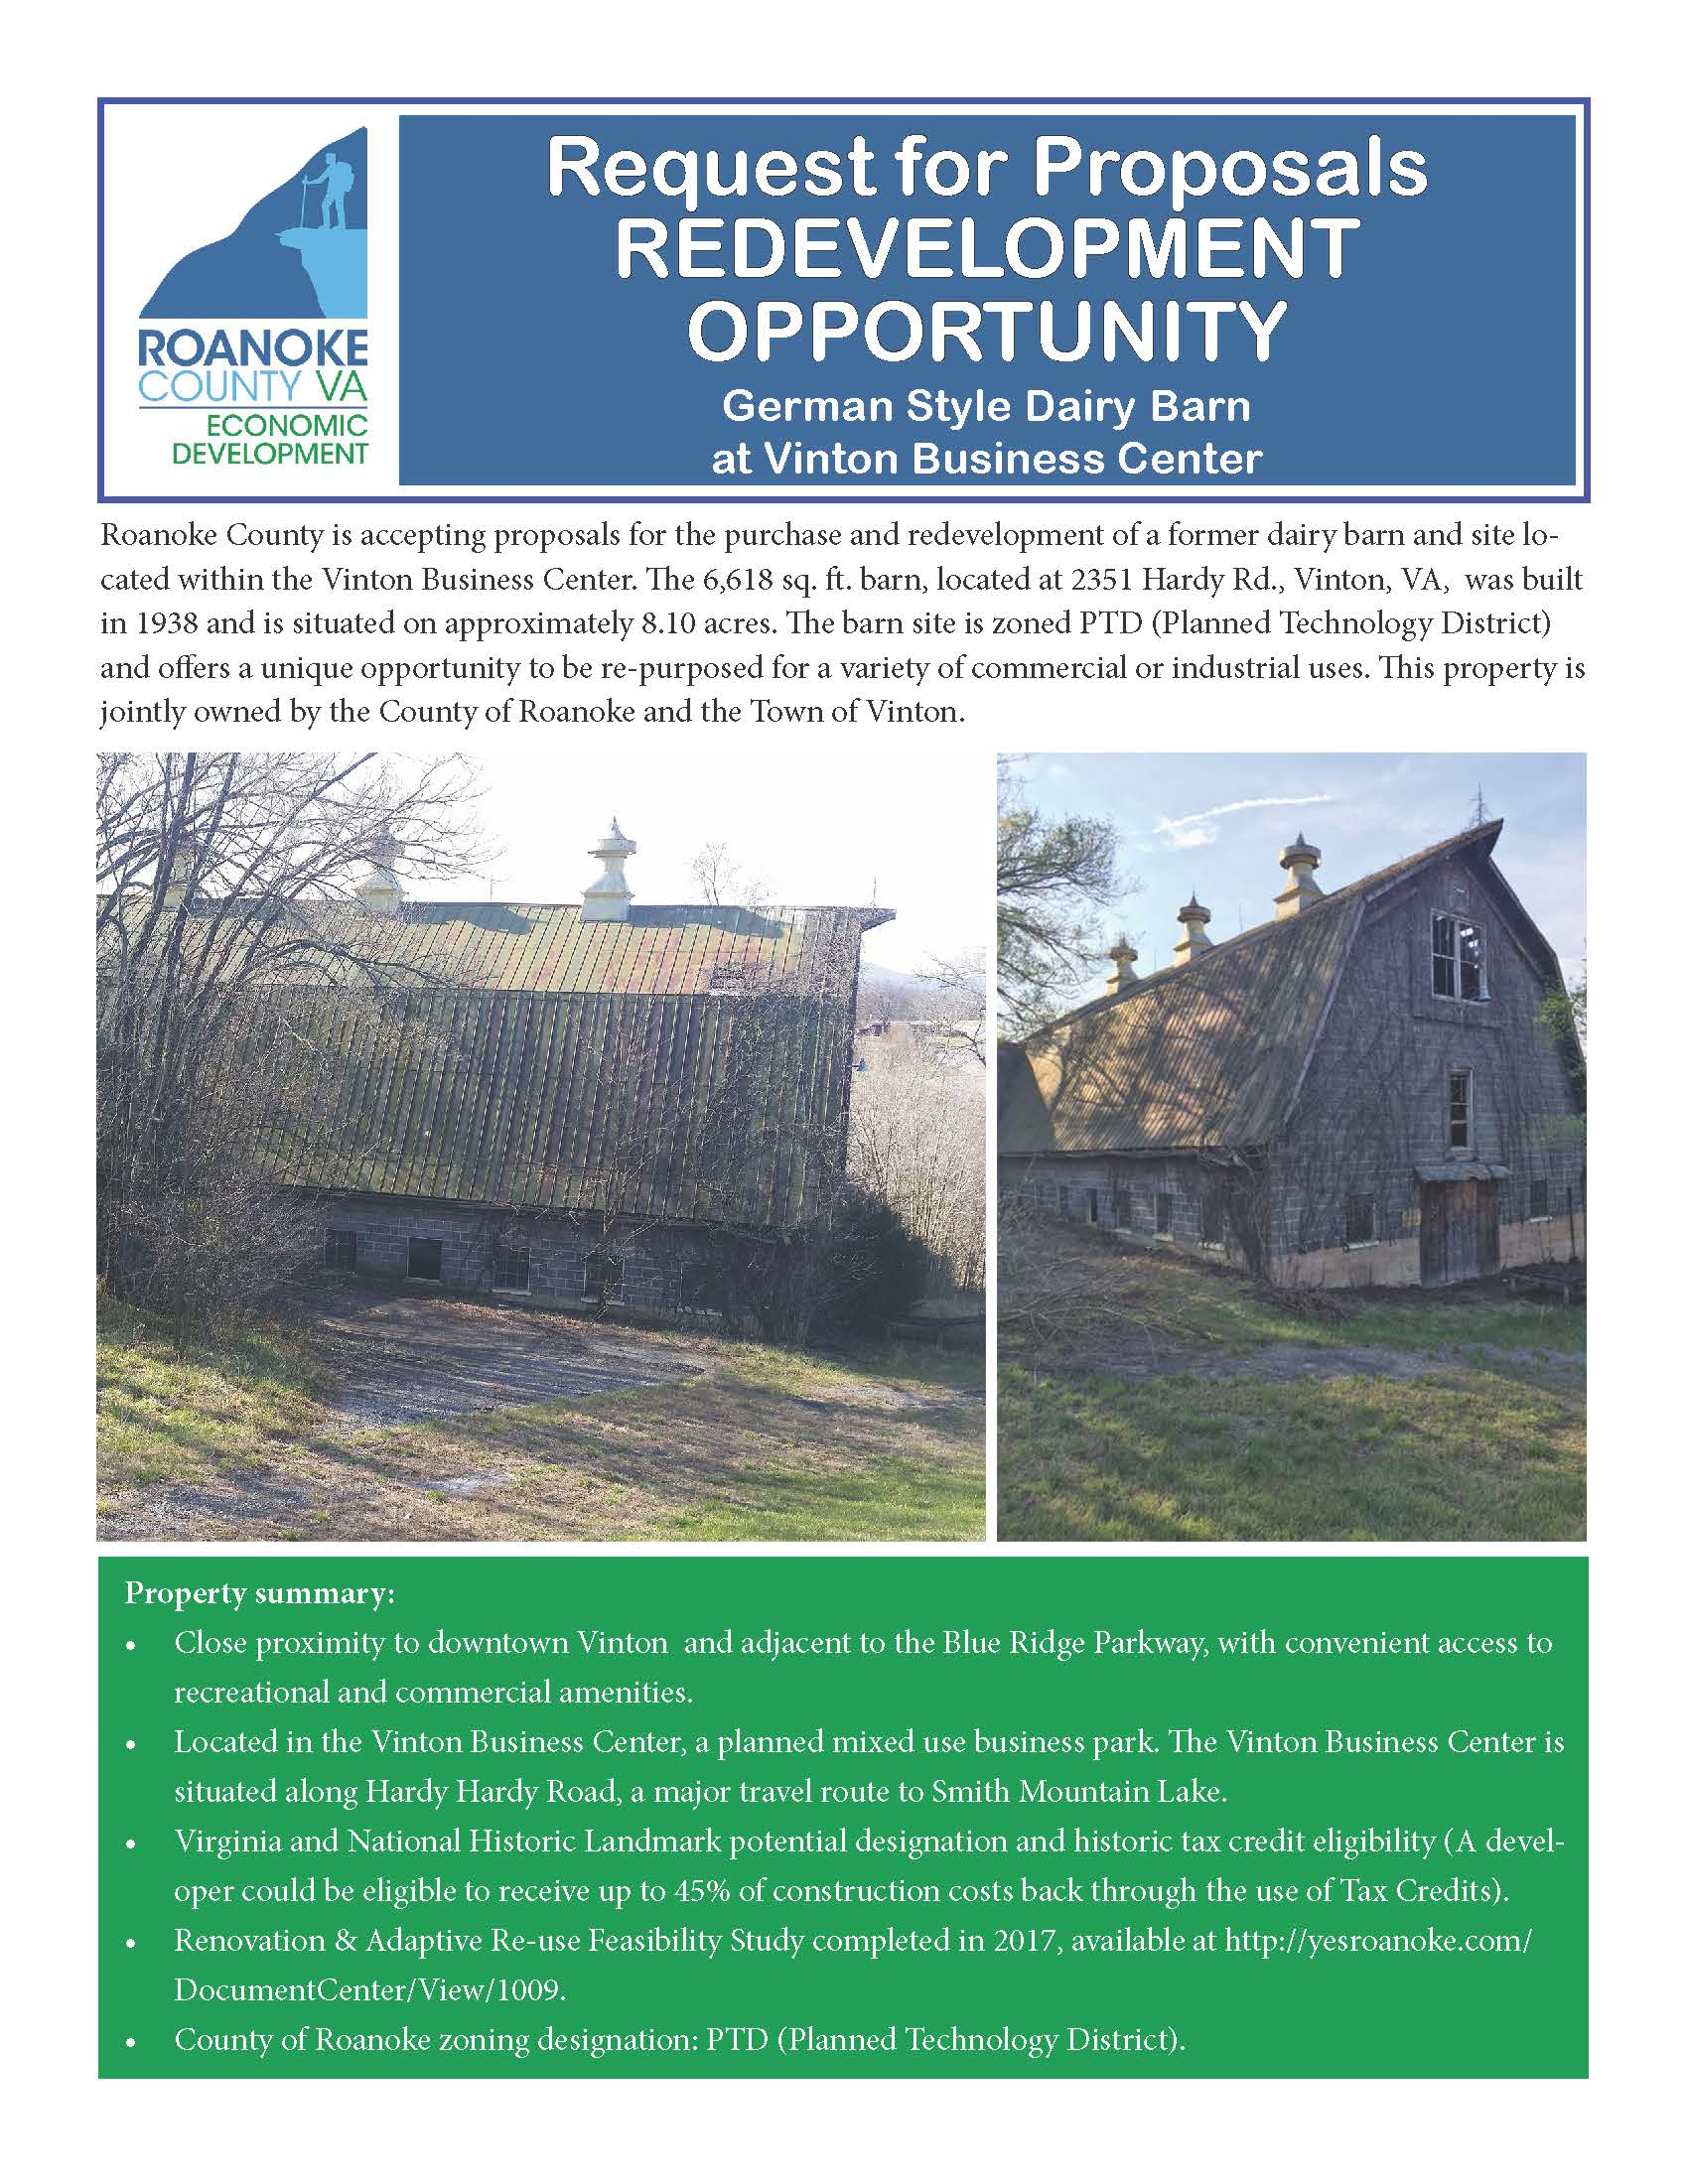 VBC Barn RFP flyer_Page_1 Opens in new window